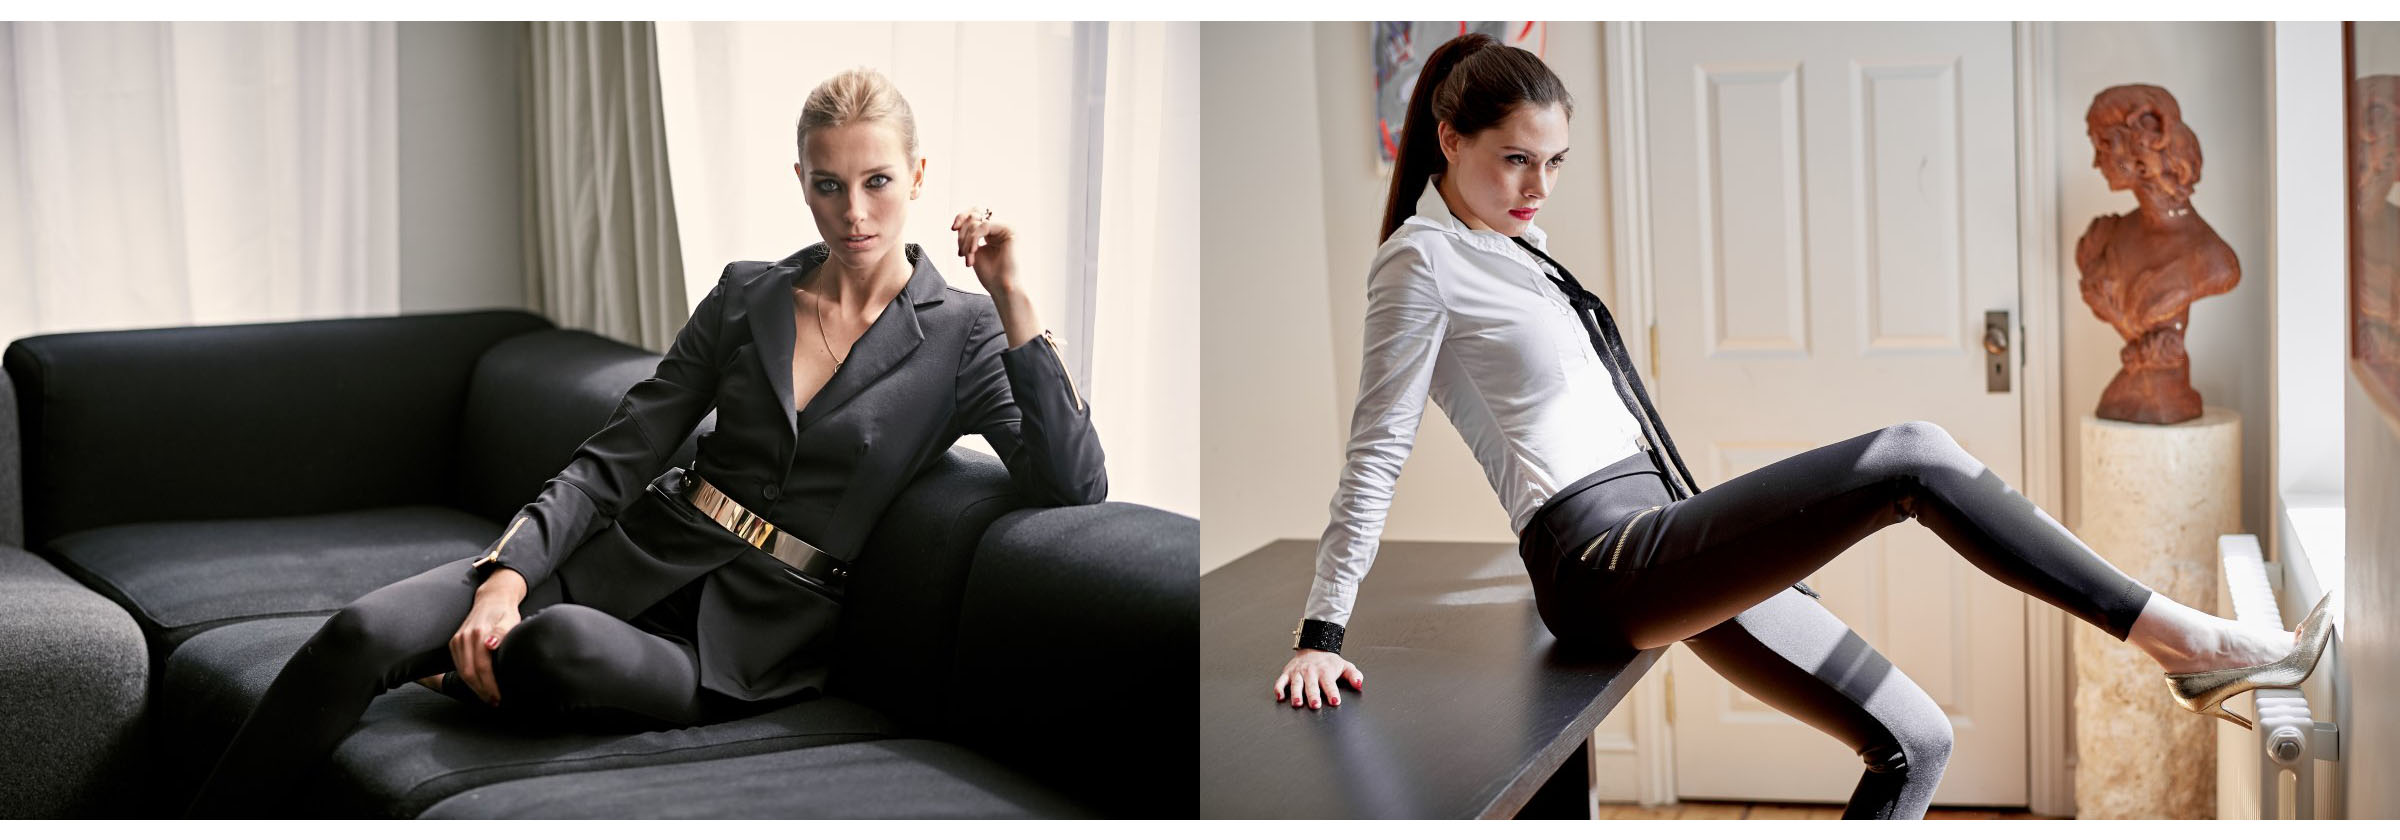 Female models wearing outfits for the office